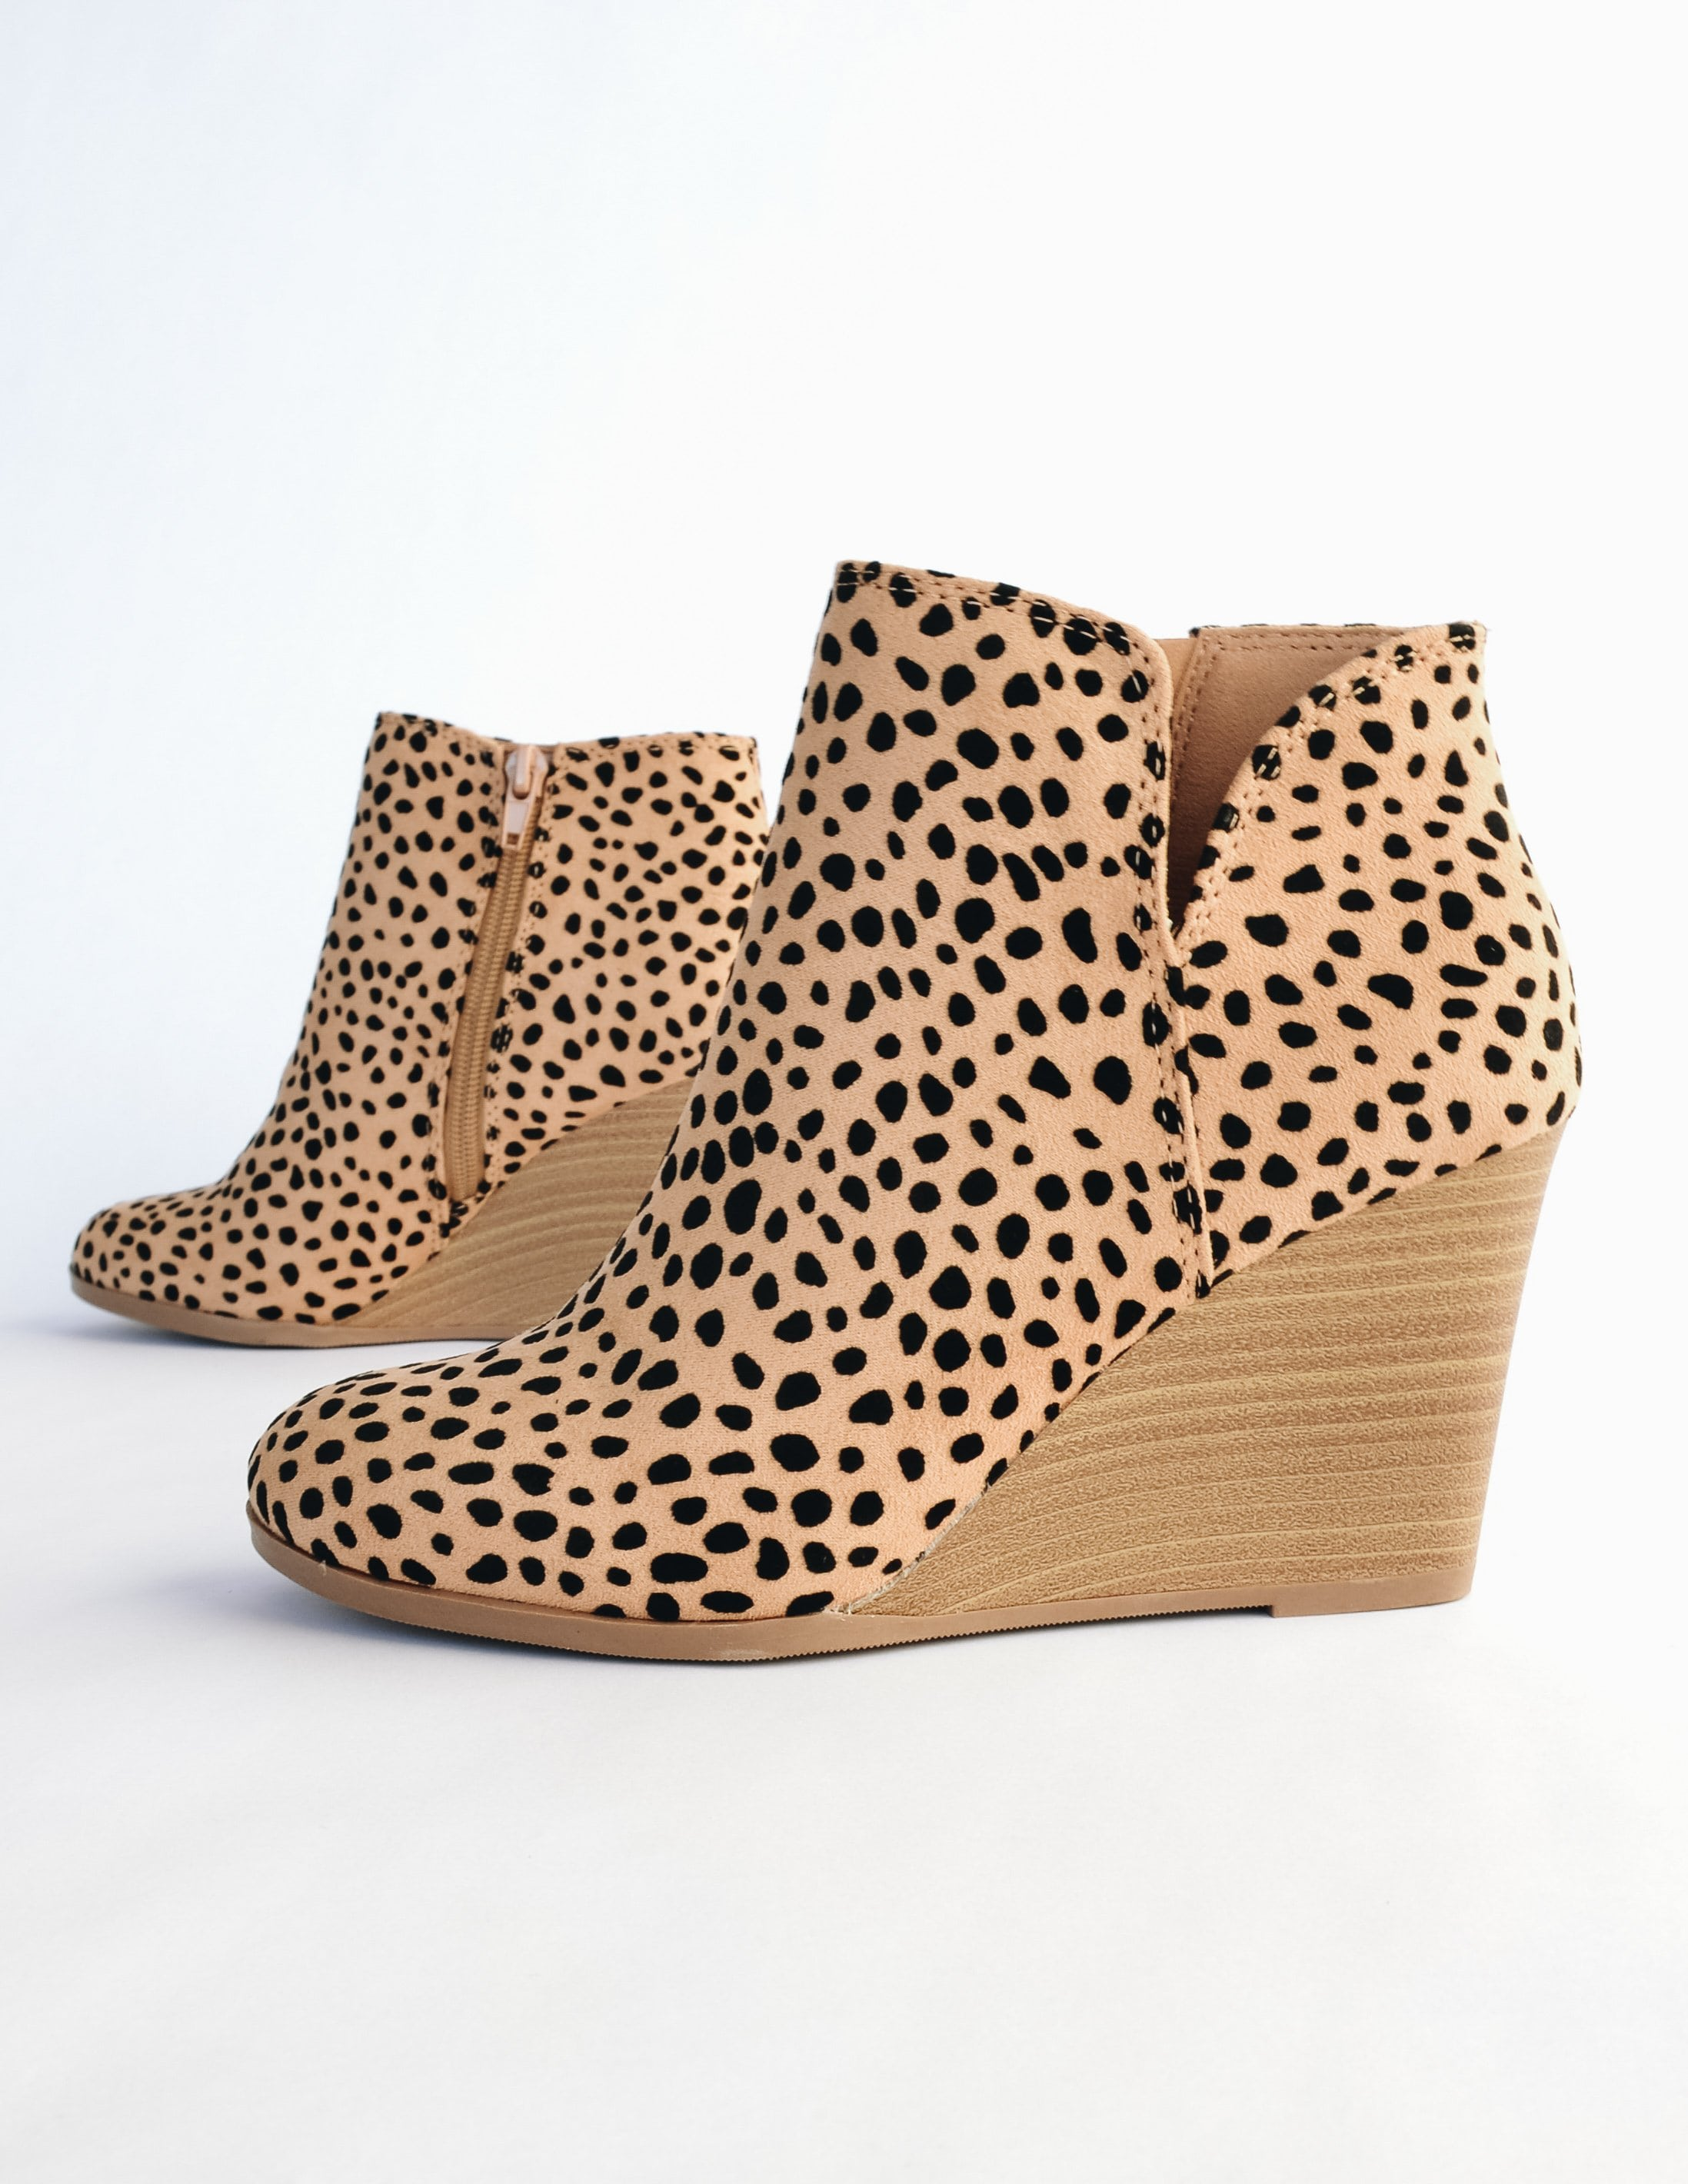 Cheetah print wedge with faux stacked wedge heel and small v cut on side